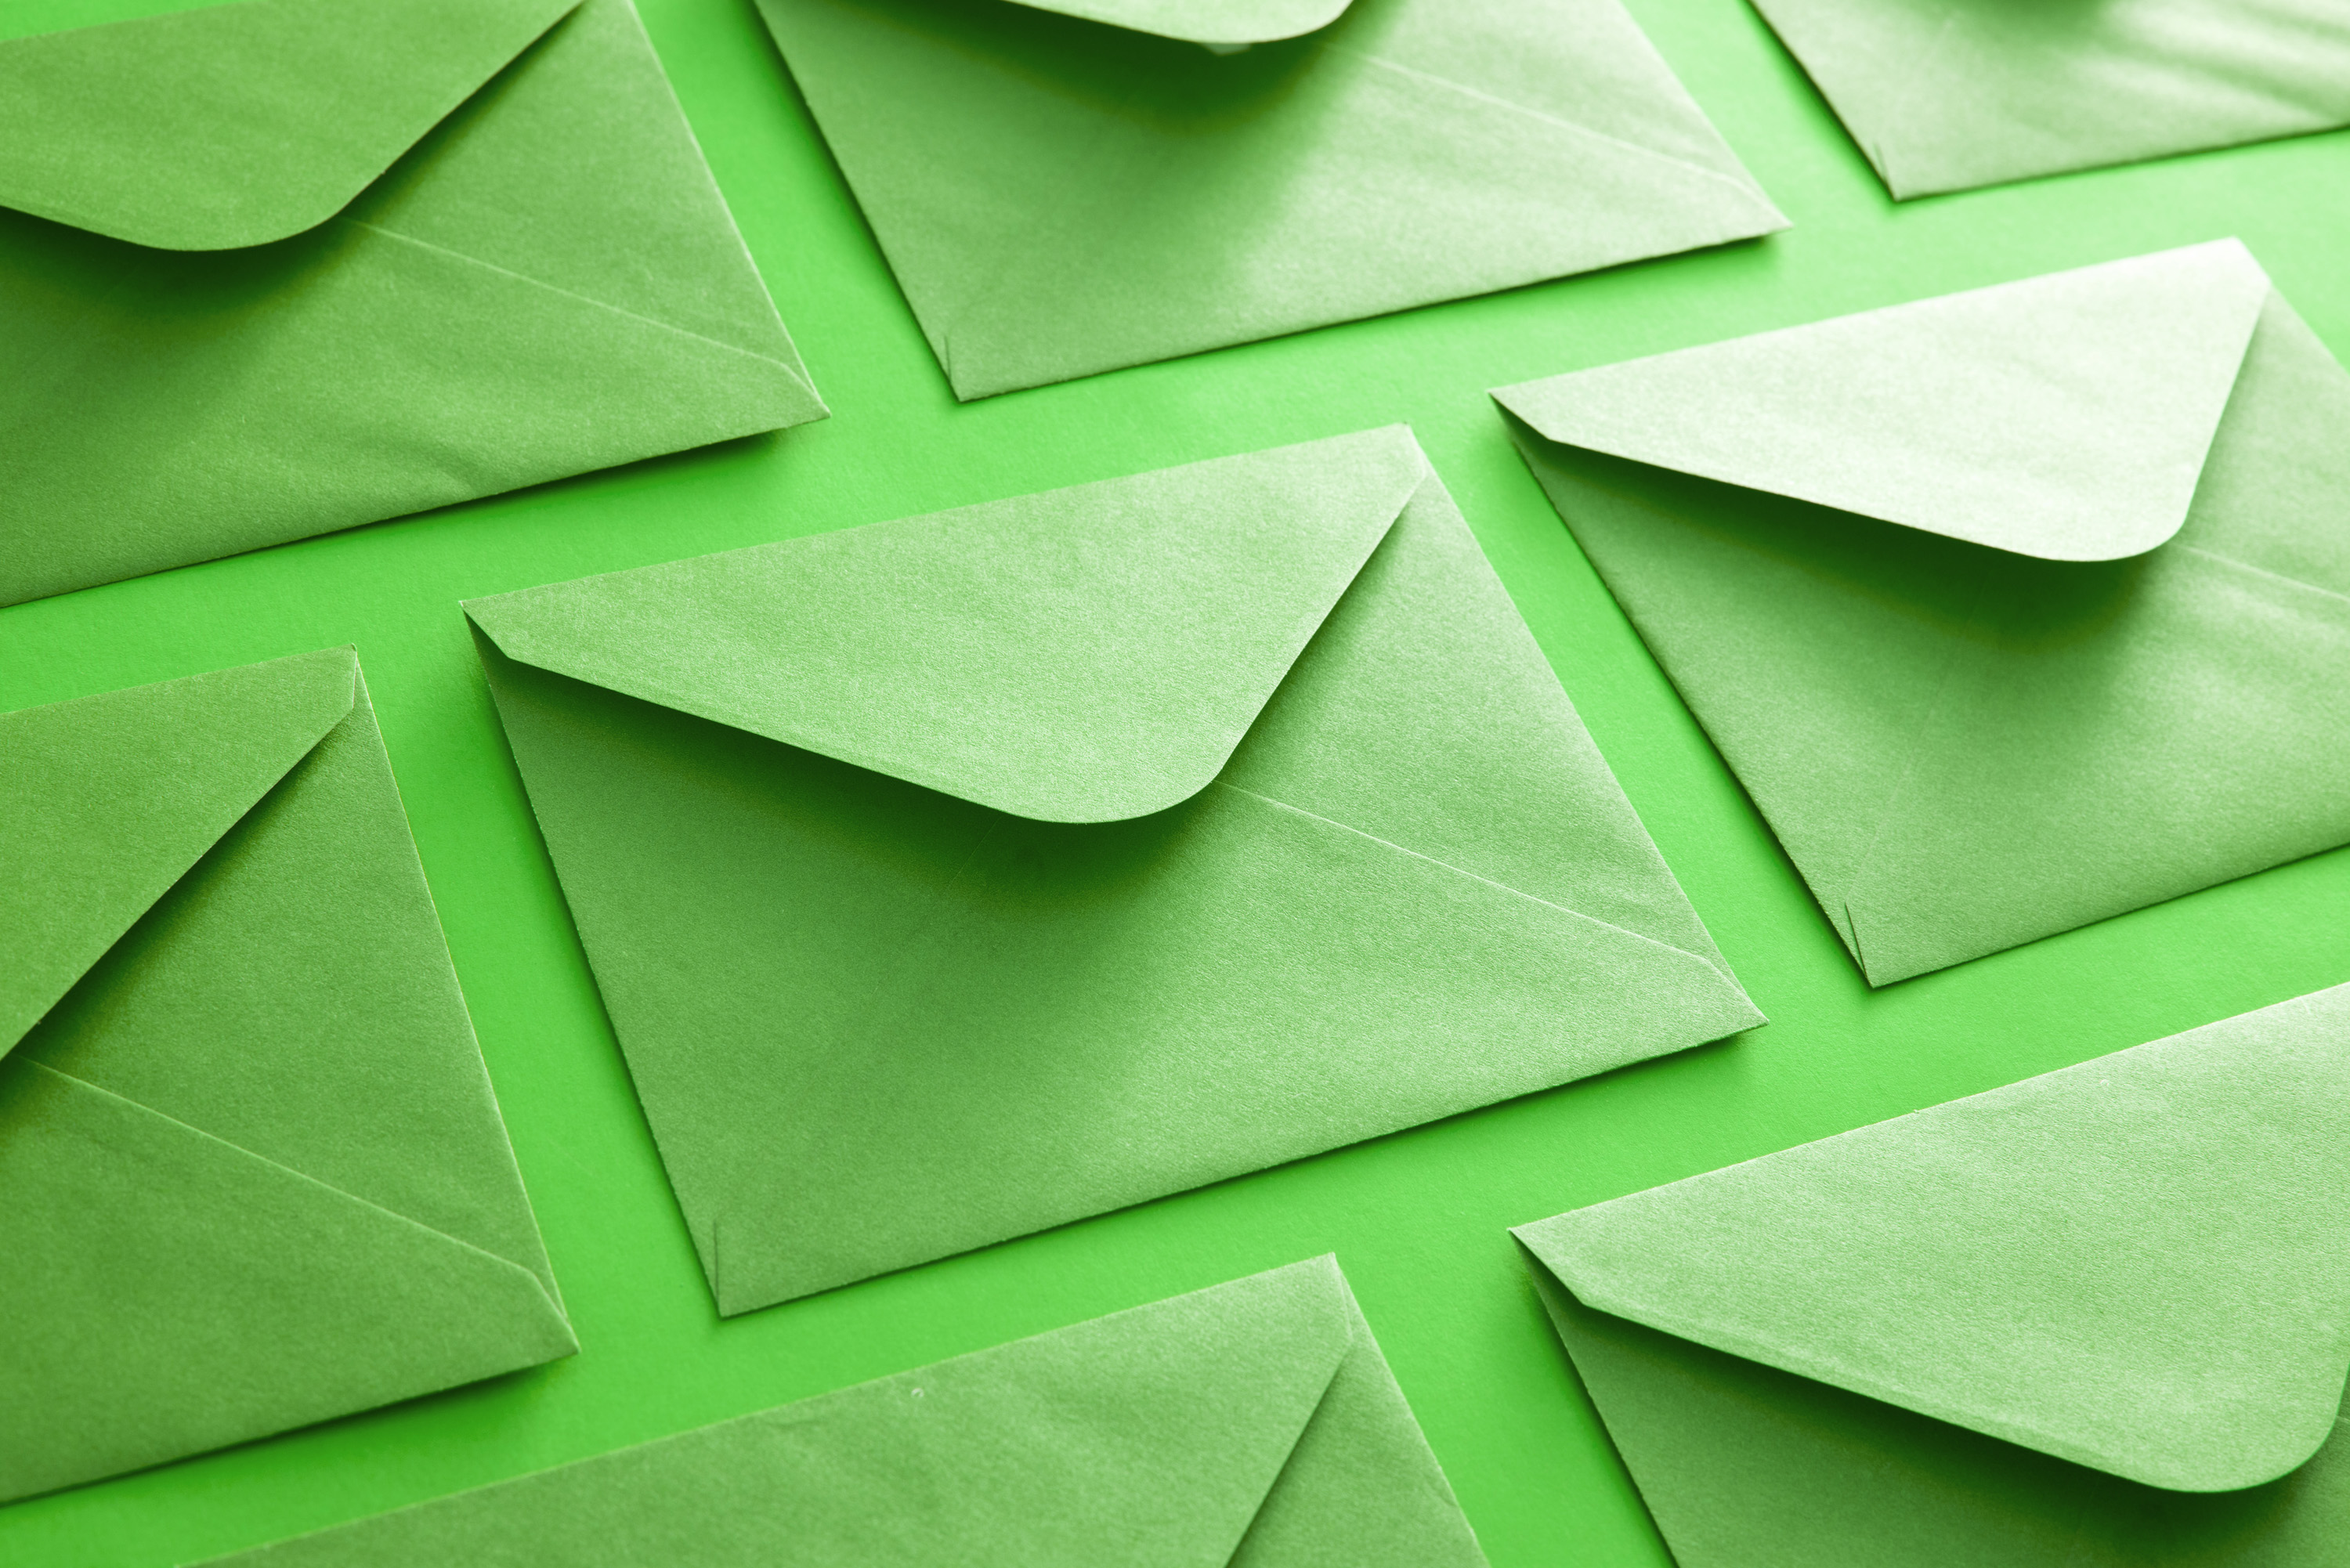 Colorful green envelope background neatly arranged face down with open flaps in diagonal rows in a correspondence and communication concept